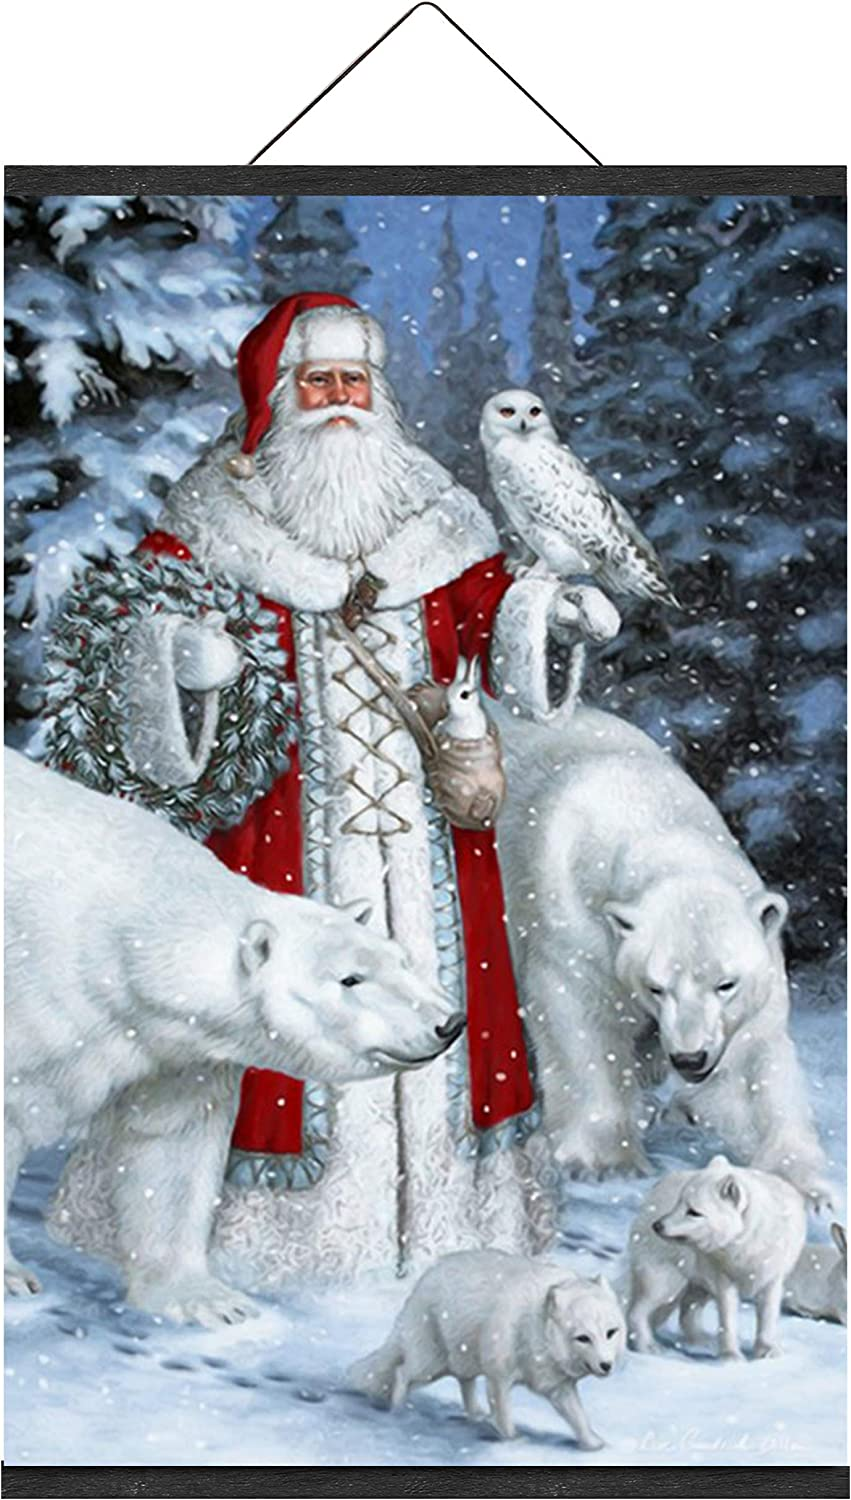 Santa Claus Animal Snow Forest Scene Greeting Season Over item All stores are sold handling W Christmas